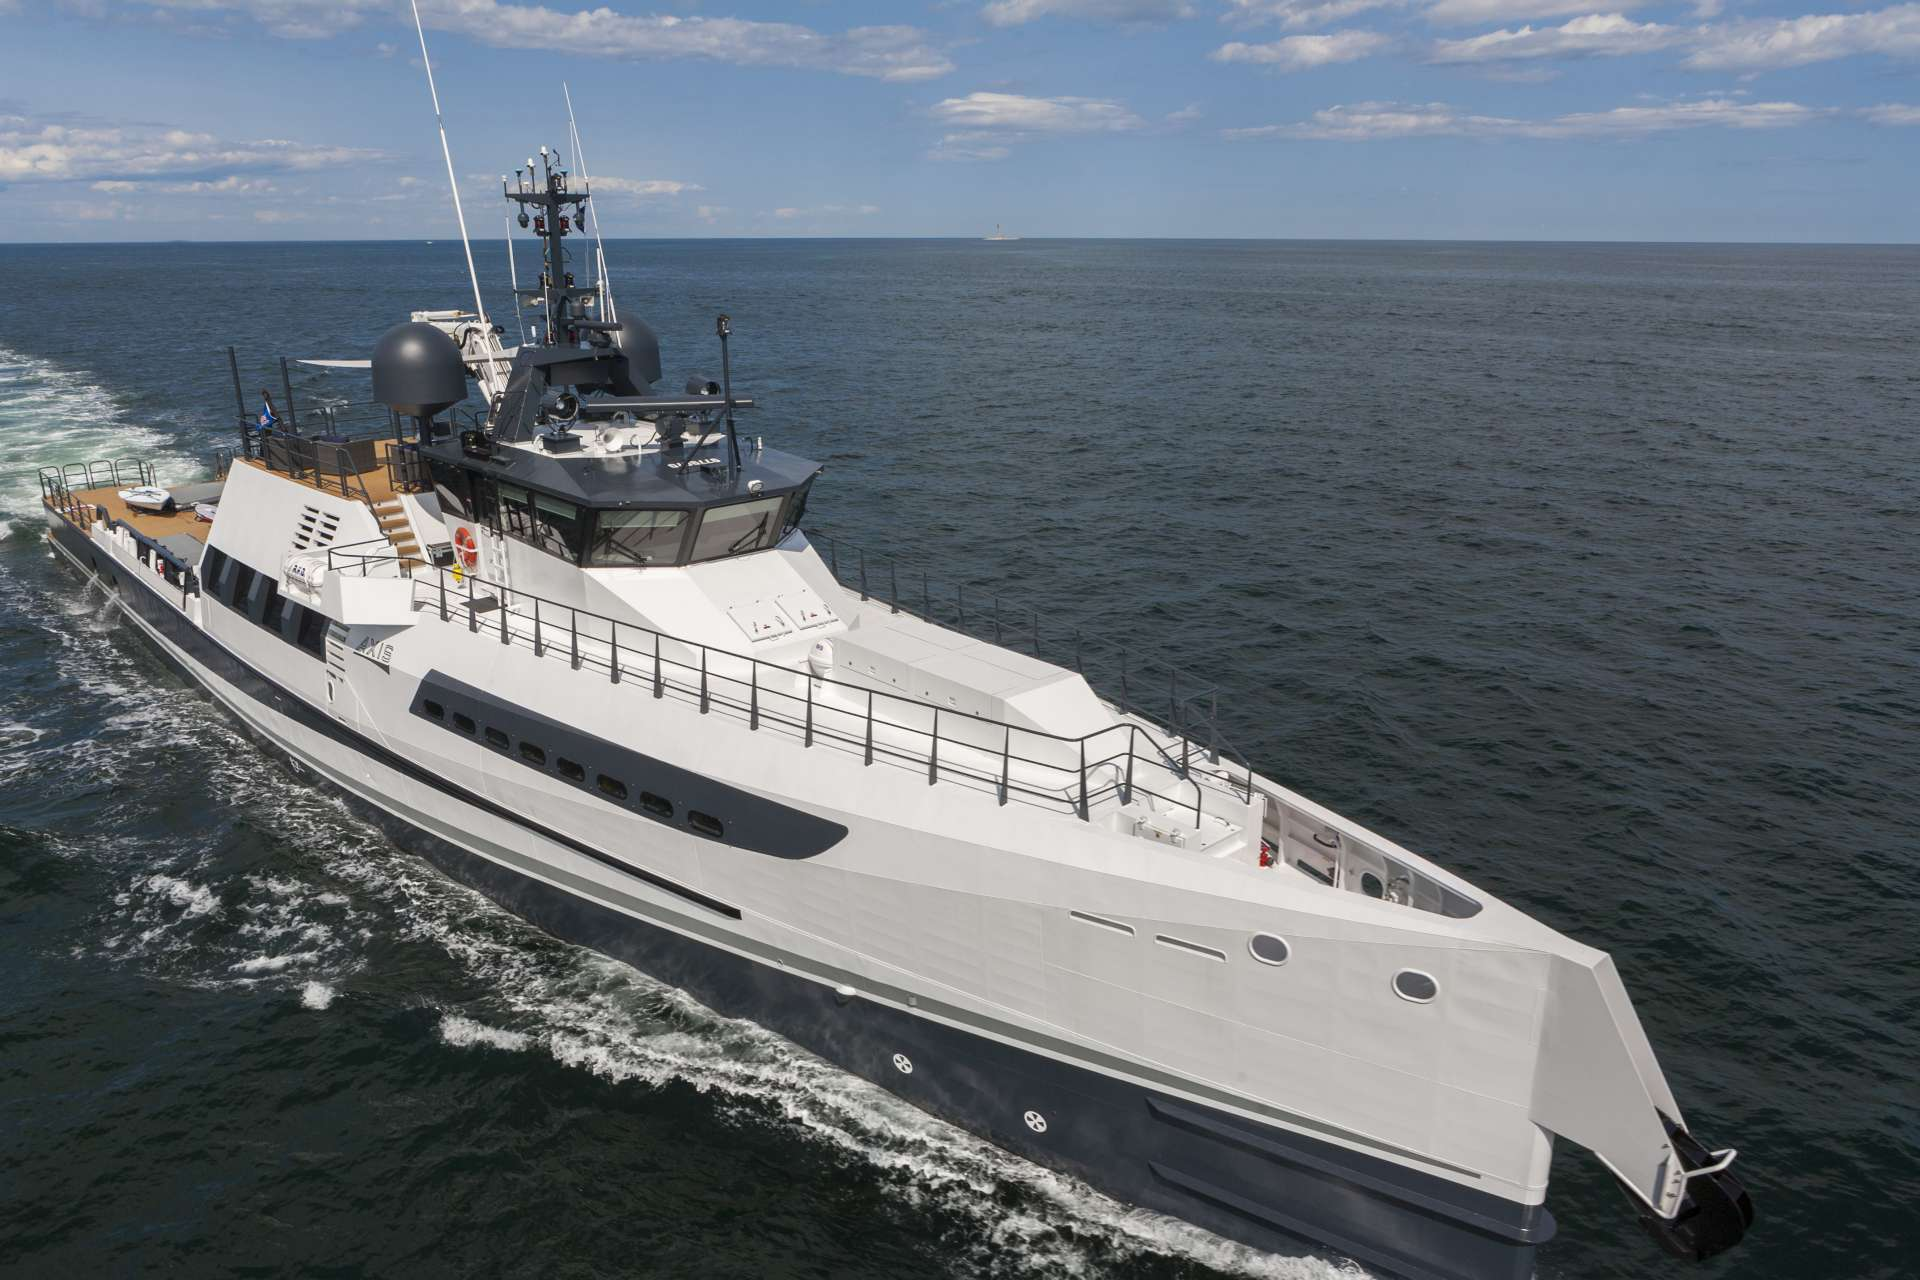 Image of AXIS yacht #12